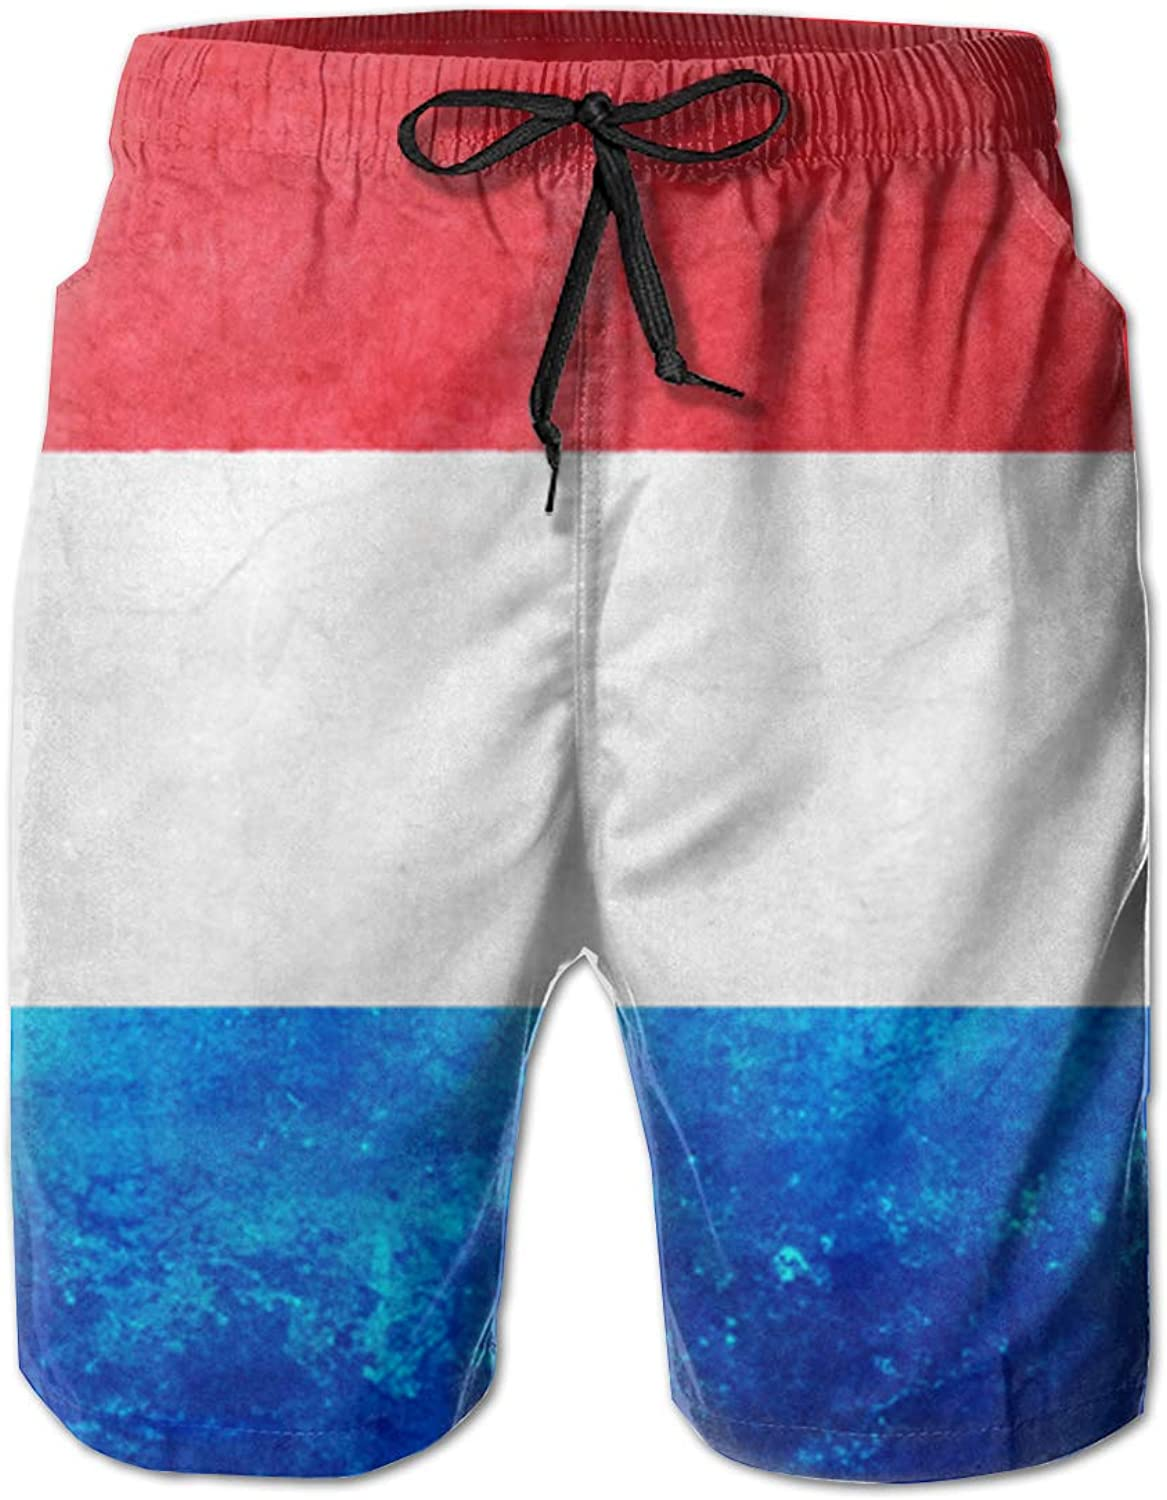 - ROLLING ROLLING ROLLING HOP Men's Dry Swim Trunks Luxembourg Flag Swim Beach Trunks for Outside Home with Pockets c2d707